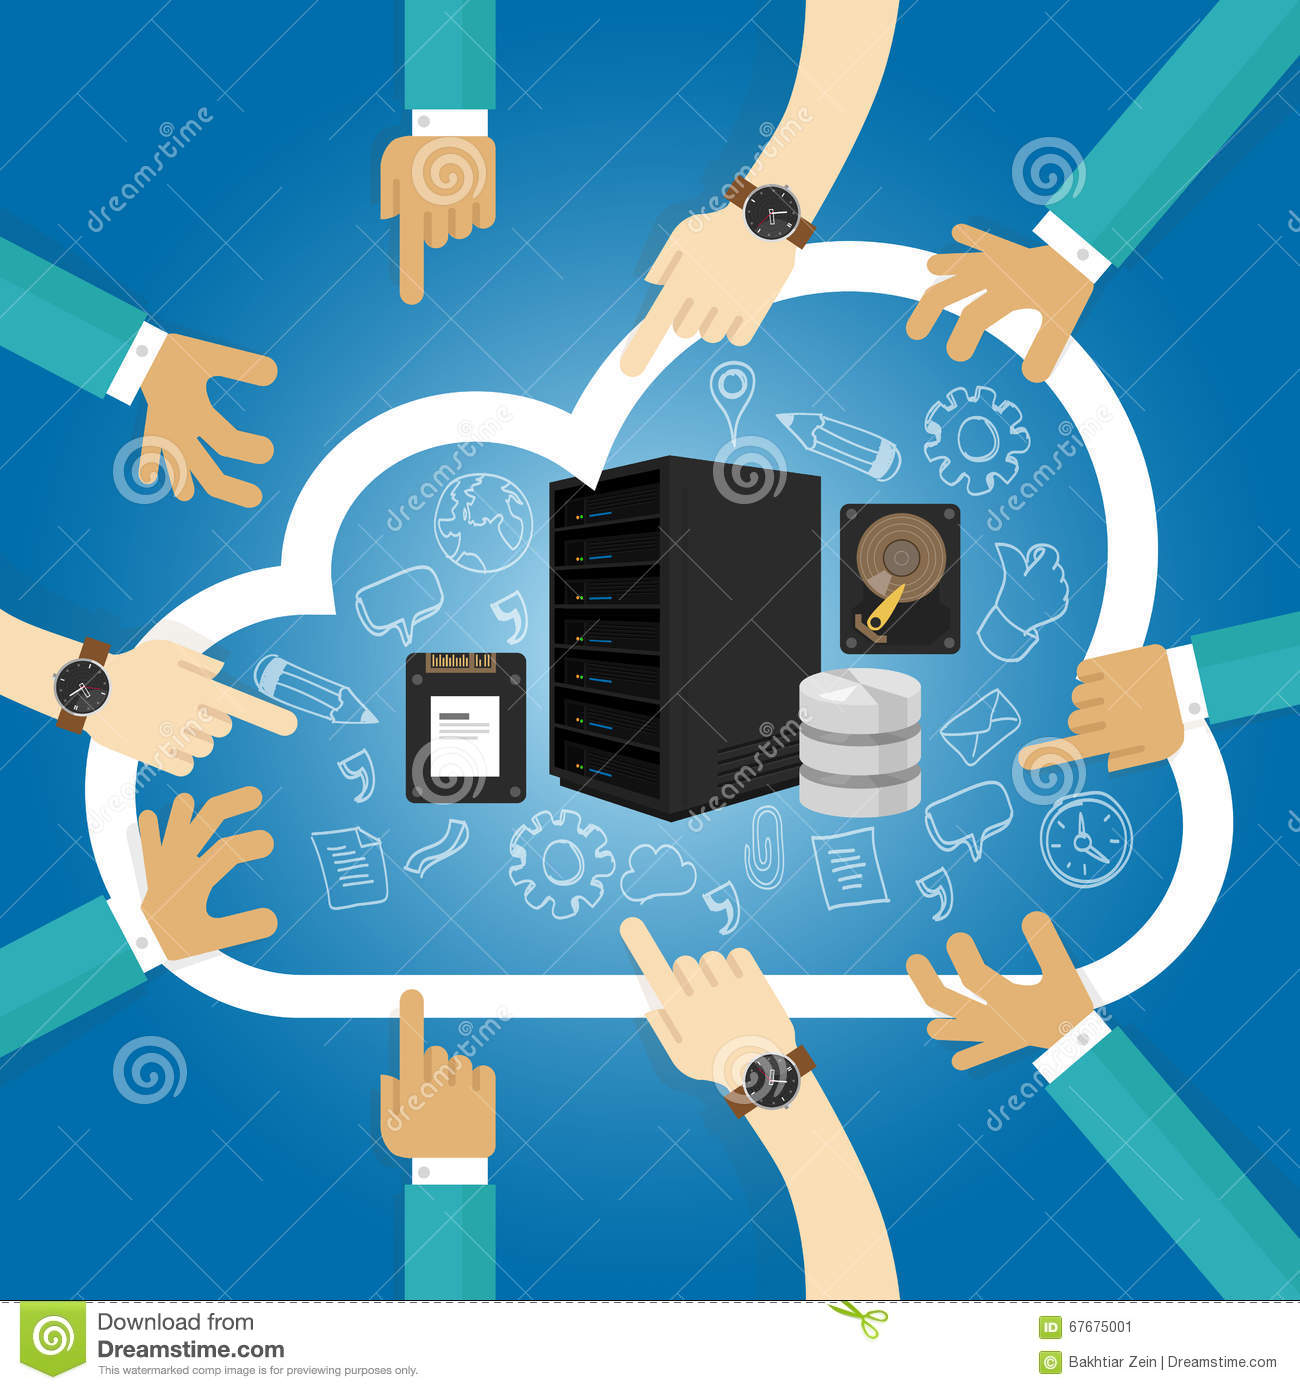 IaaS Infrastructure as a service shared hosting hardware in the cloud storage database server virtualization